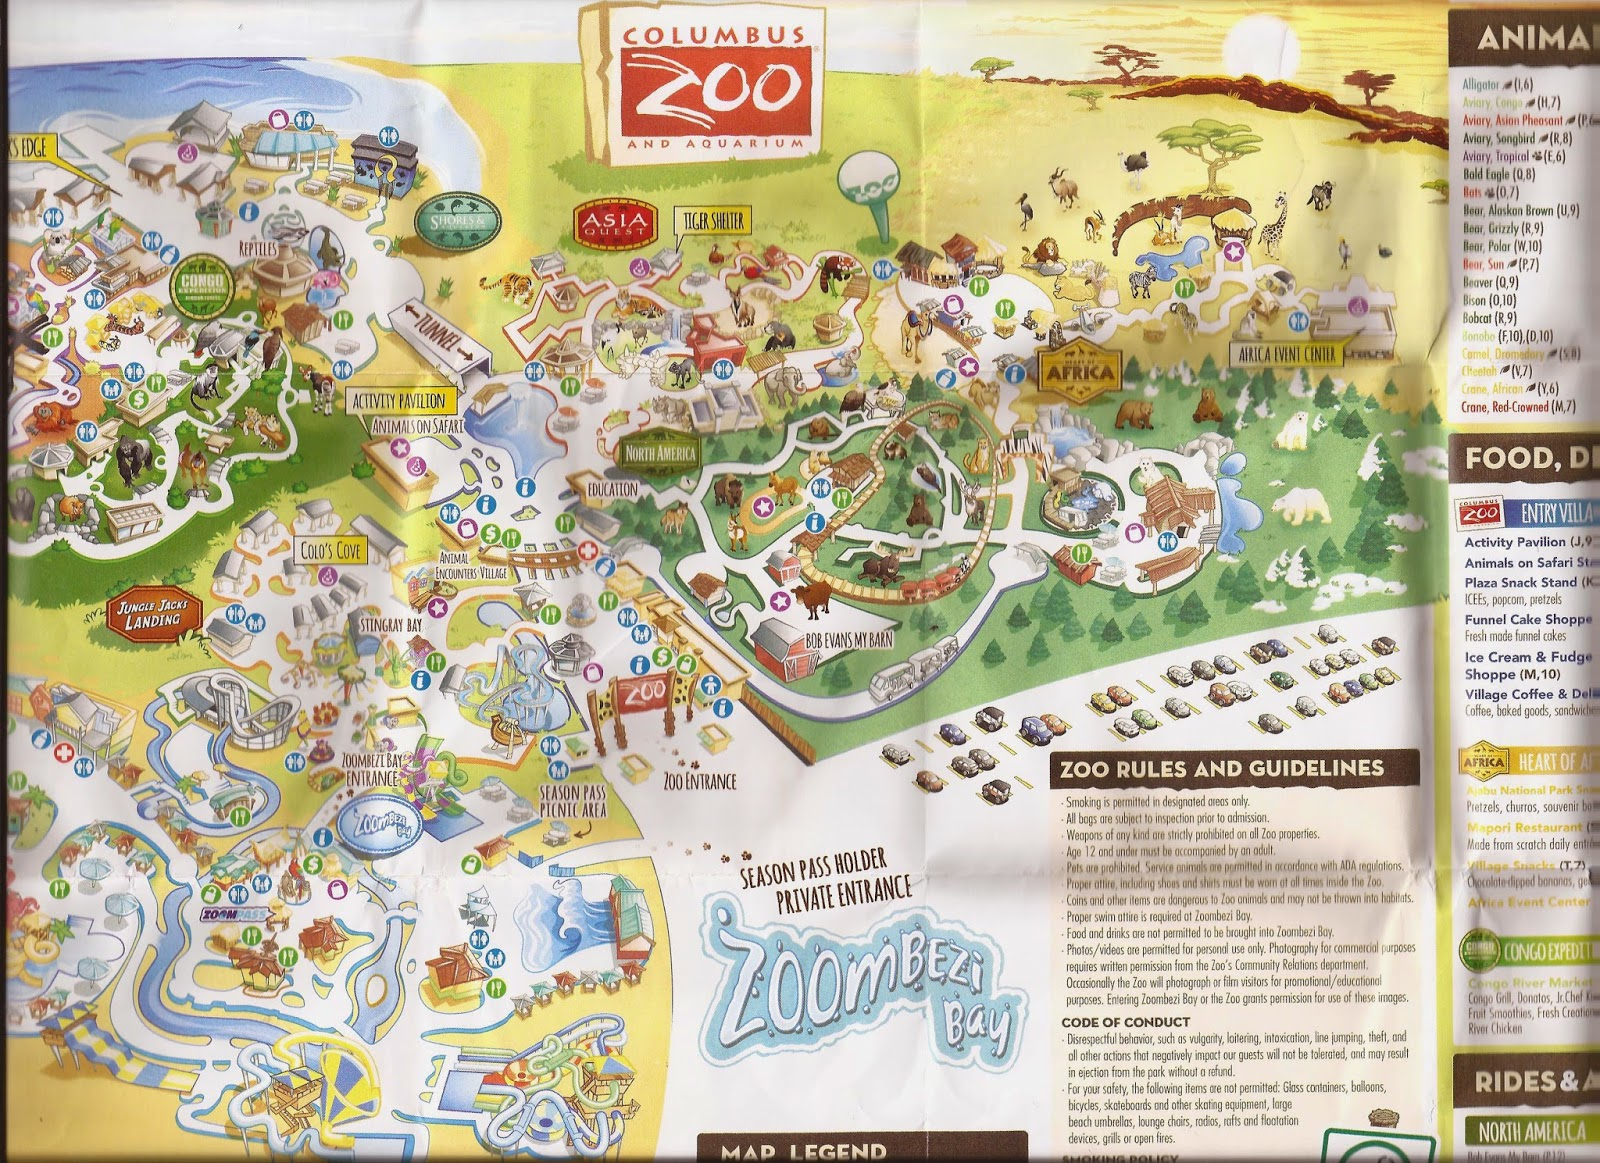 Cleveland Zoo Map on oklahoma city zoo map, jacksonville zoo and gardens map, christmas story house map, disney's animal kingdom map, point defiance zoo & aquarium map, san diego zoo safari map, living desert zoo and gardens map, the living desert map, cincinnati zoo map, mann's chinese theater map, university hospitals of cleveland map, nashville zoo map, anza-borrego desert state park map, berlin zoological garden map, lorain county metroparks map, cleveland clinic foundation map, the national wwii museum map, cleveland cultural gardens map, greater cleveland map, pro football hall of fame map,